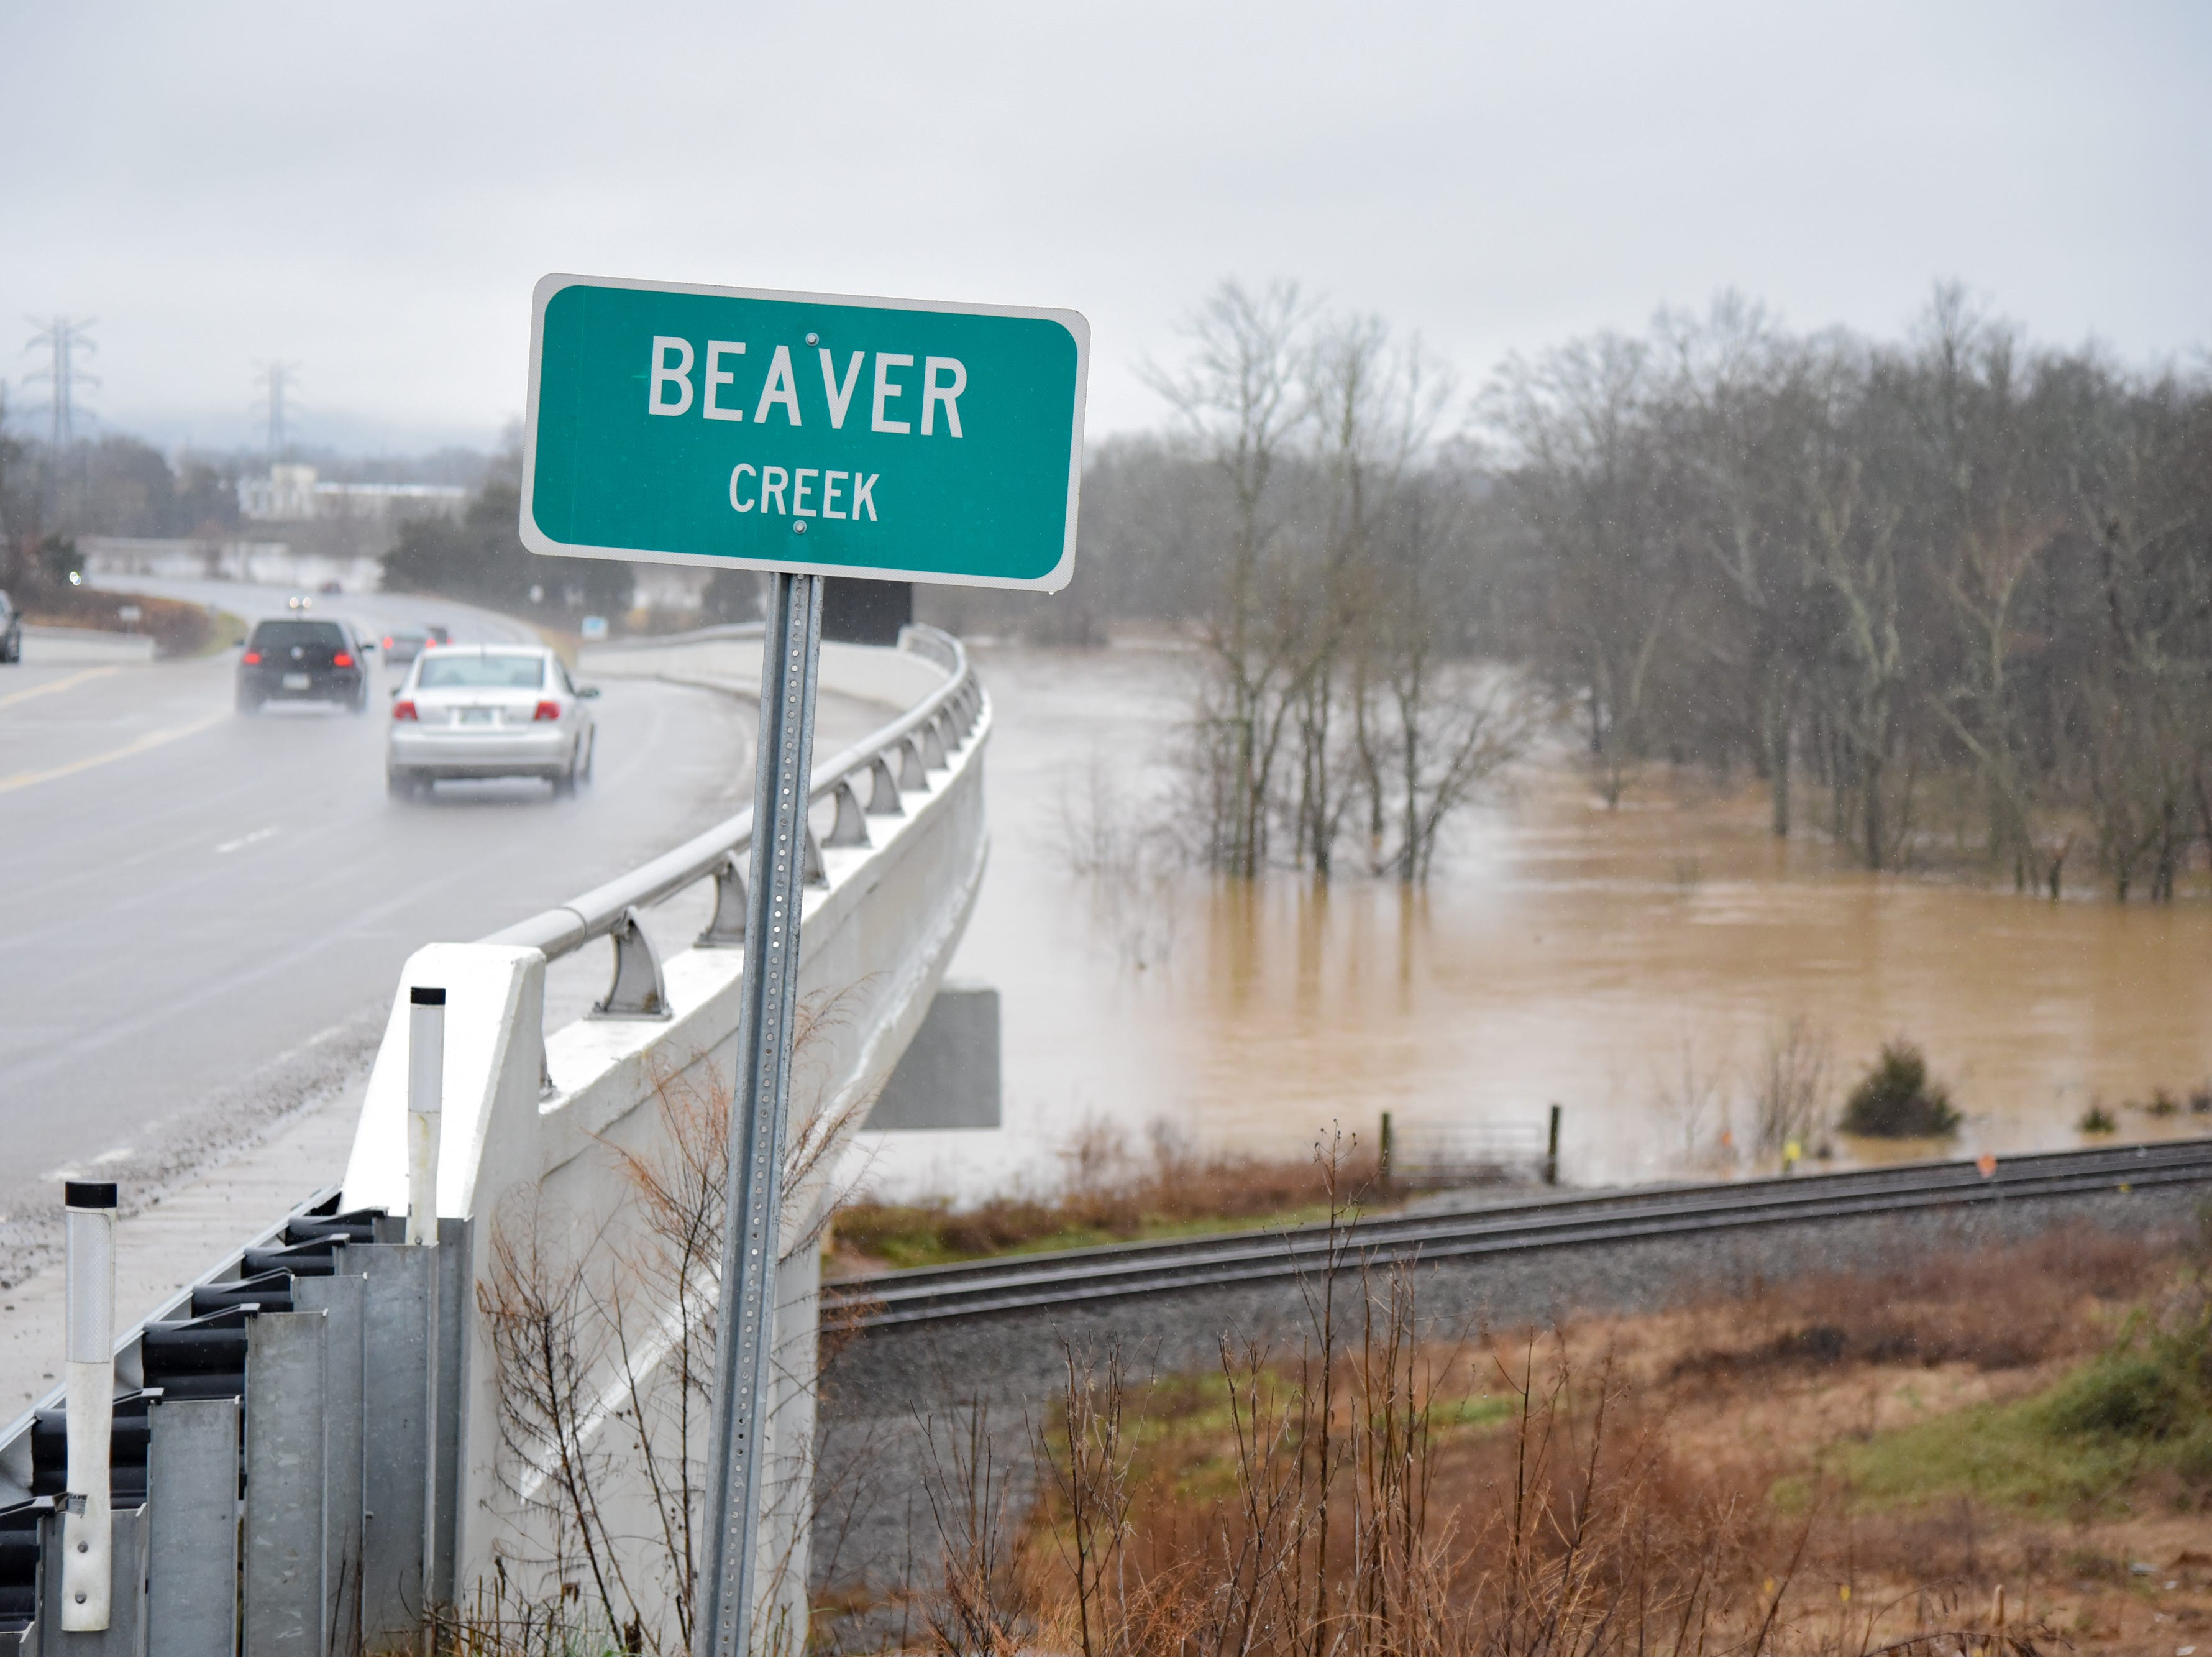 Beaver Creek overflows due to flooding in Powell Saturday Feb. 23, 2019. The Knoxville area could see between 2 and 3 inches of rain through the weekend.